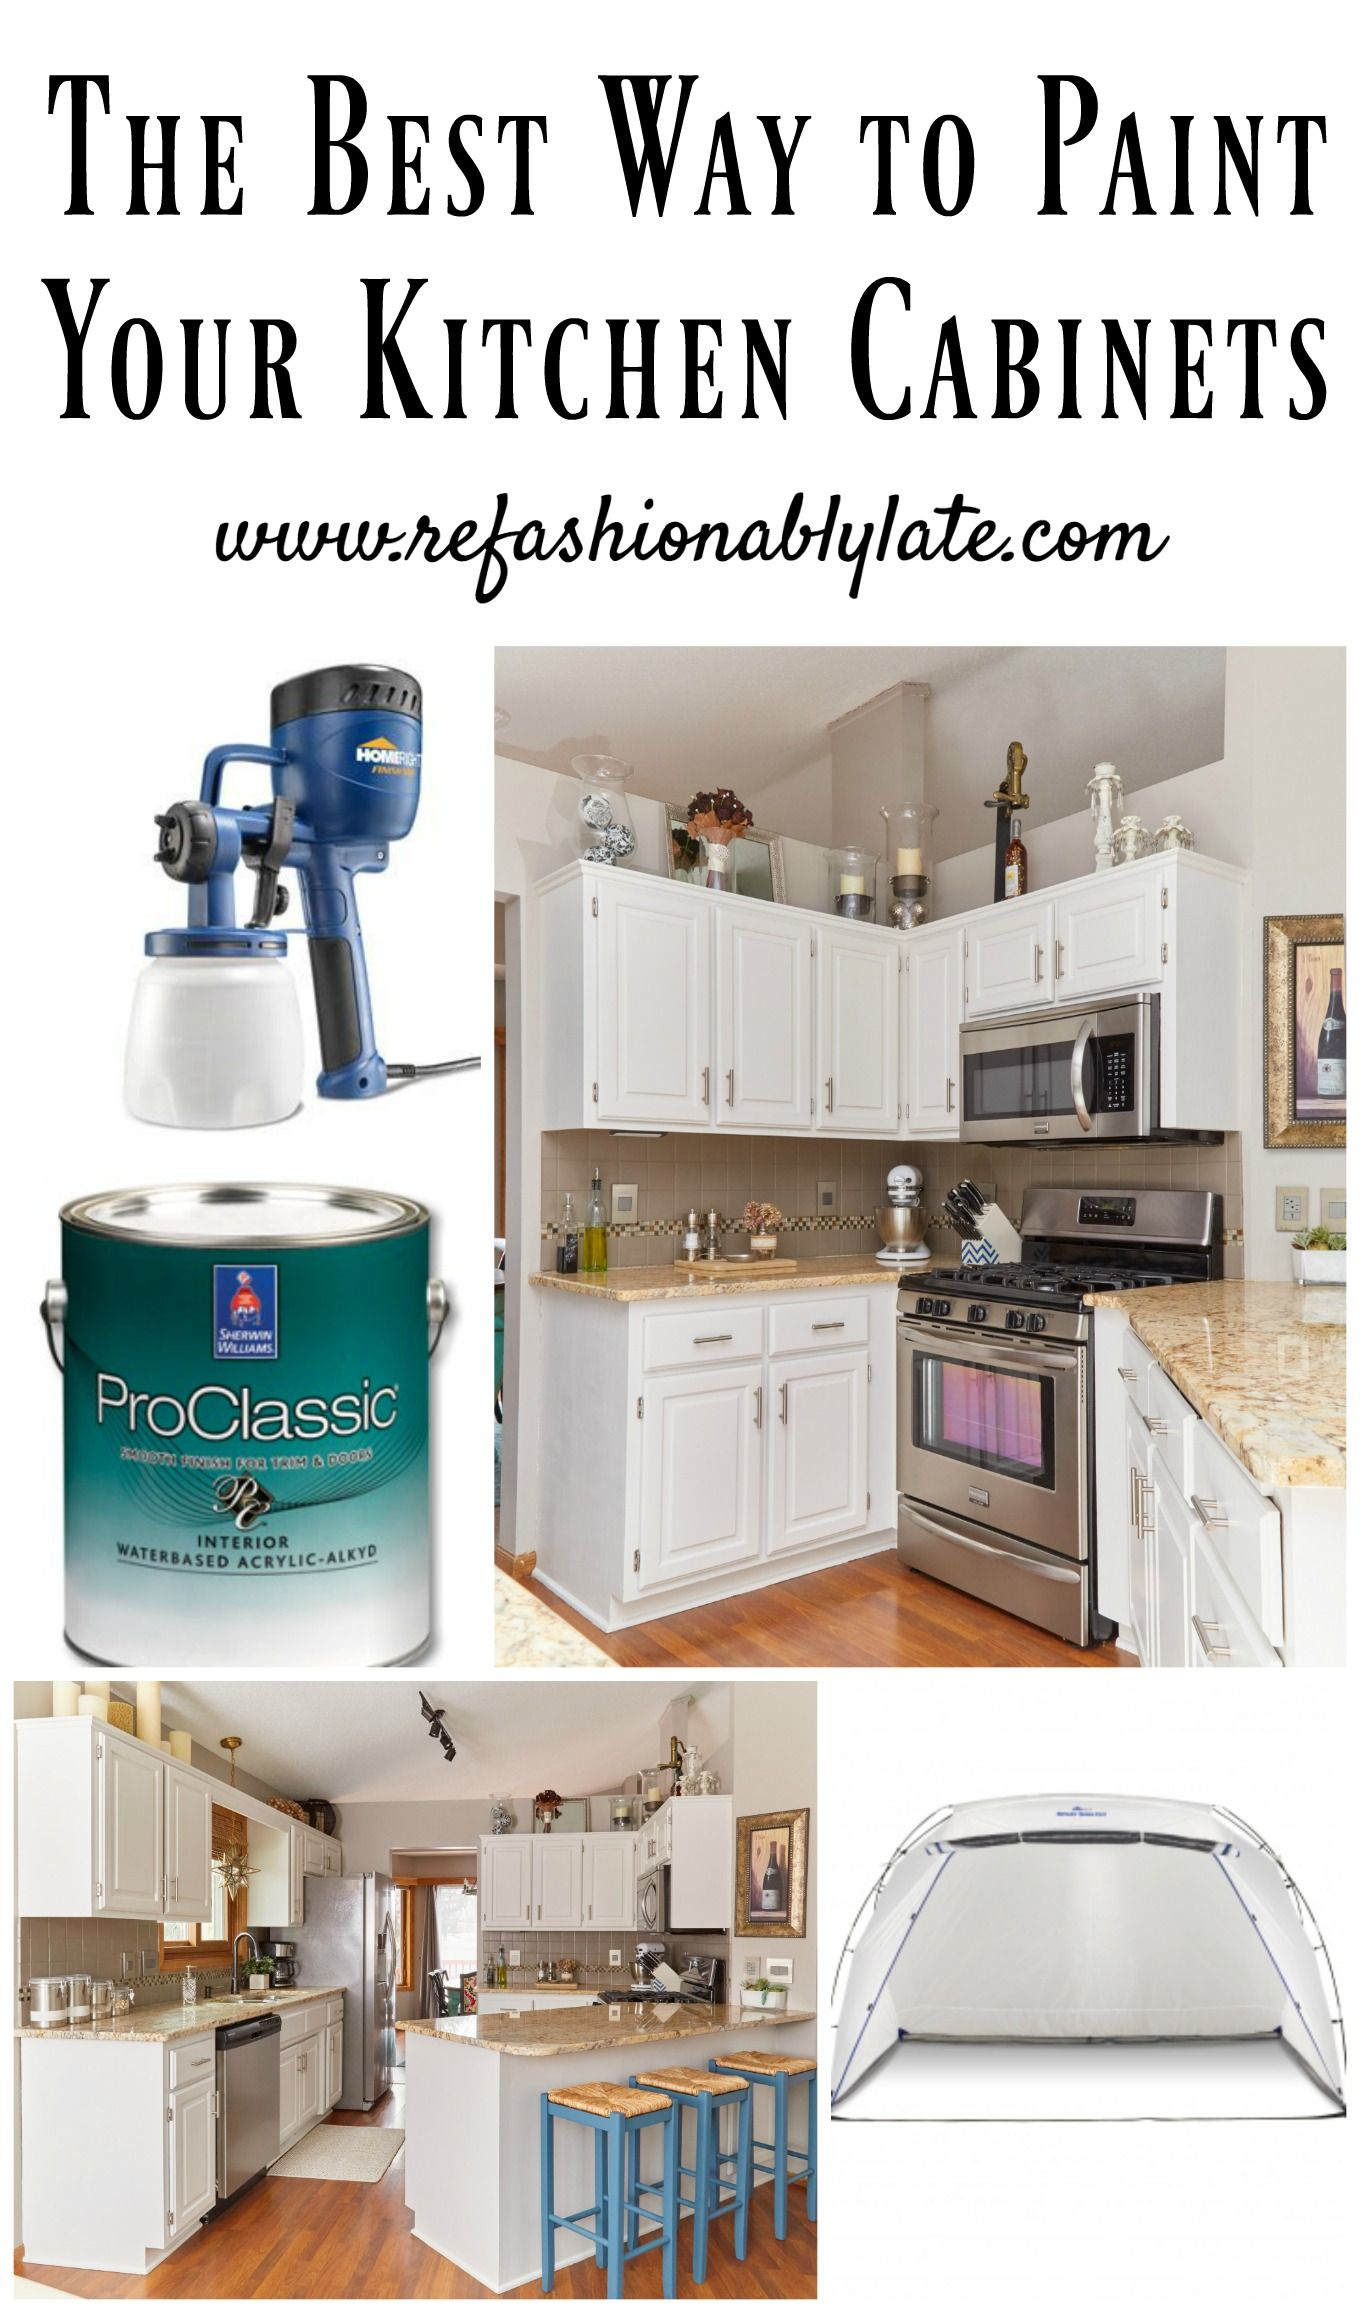 The Best Way to Paint Your Kitchen Cabinets www.refashionablylate.com